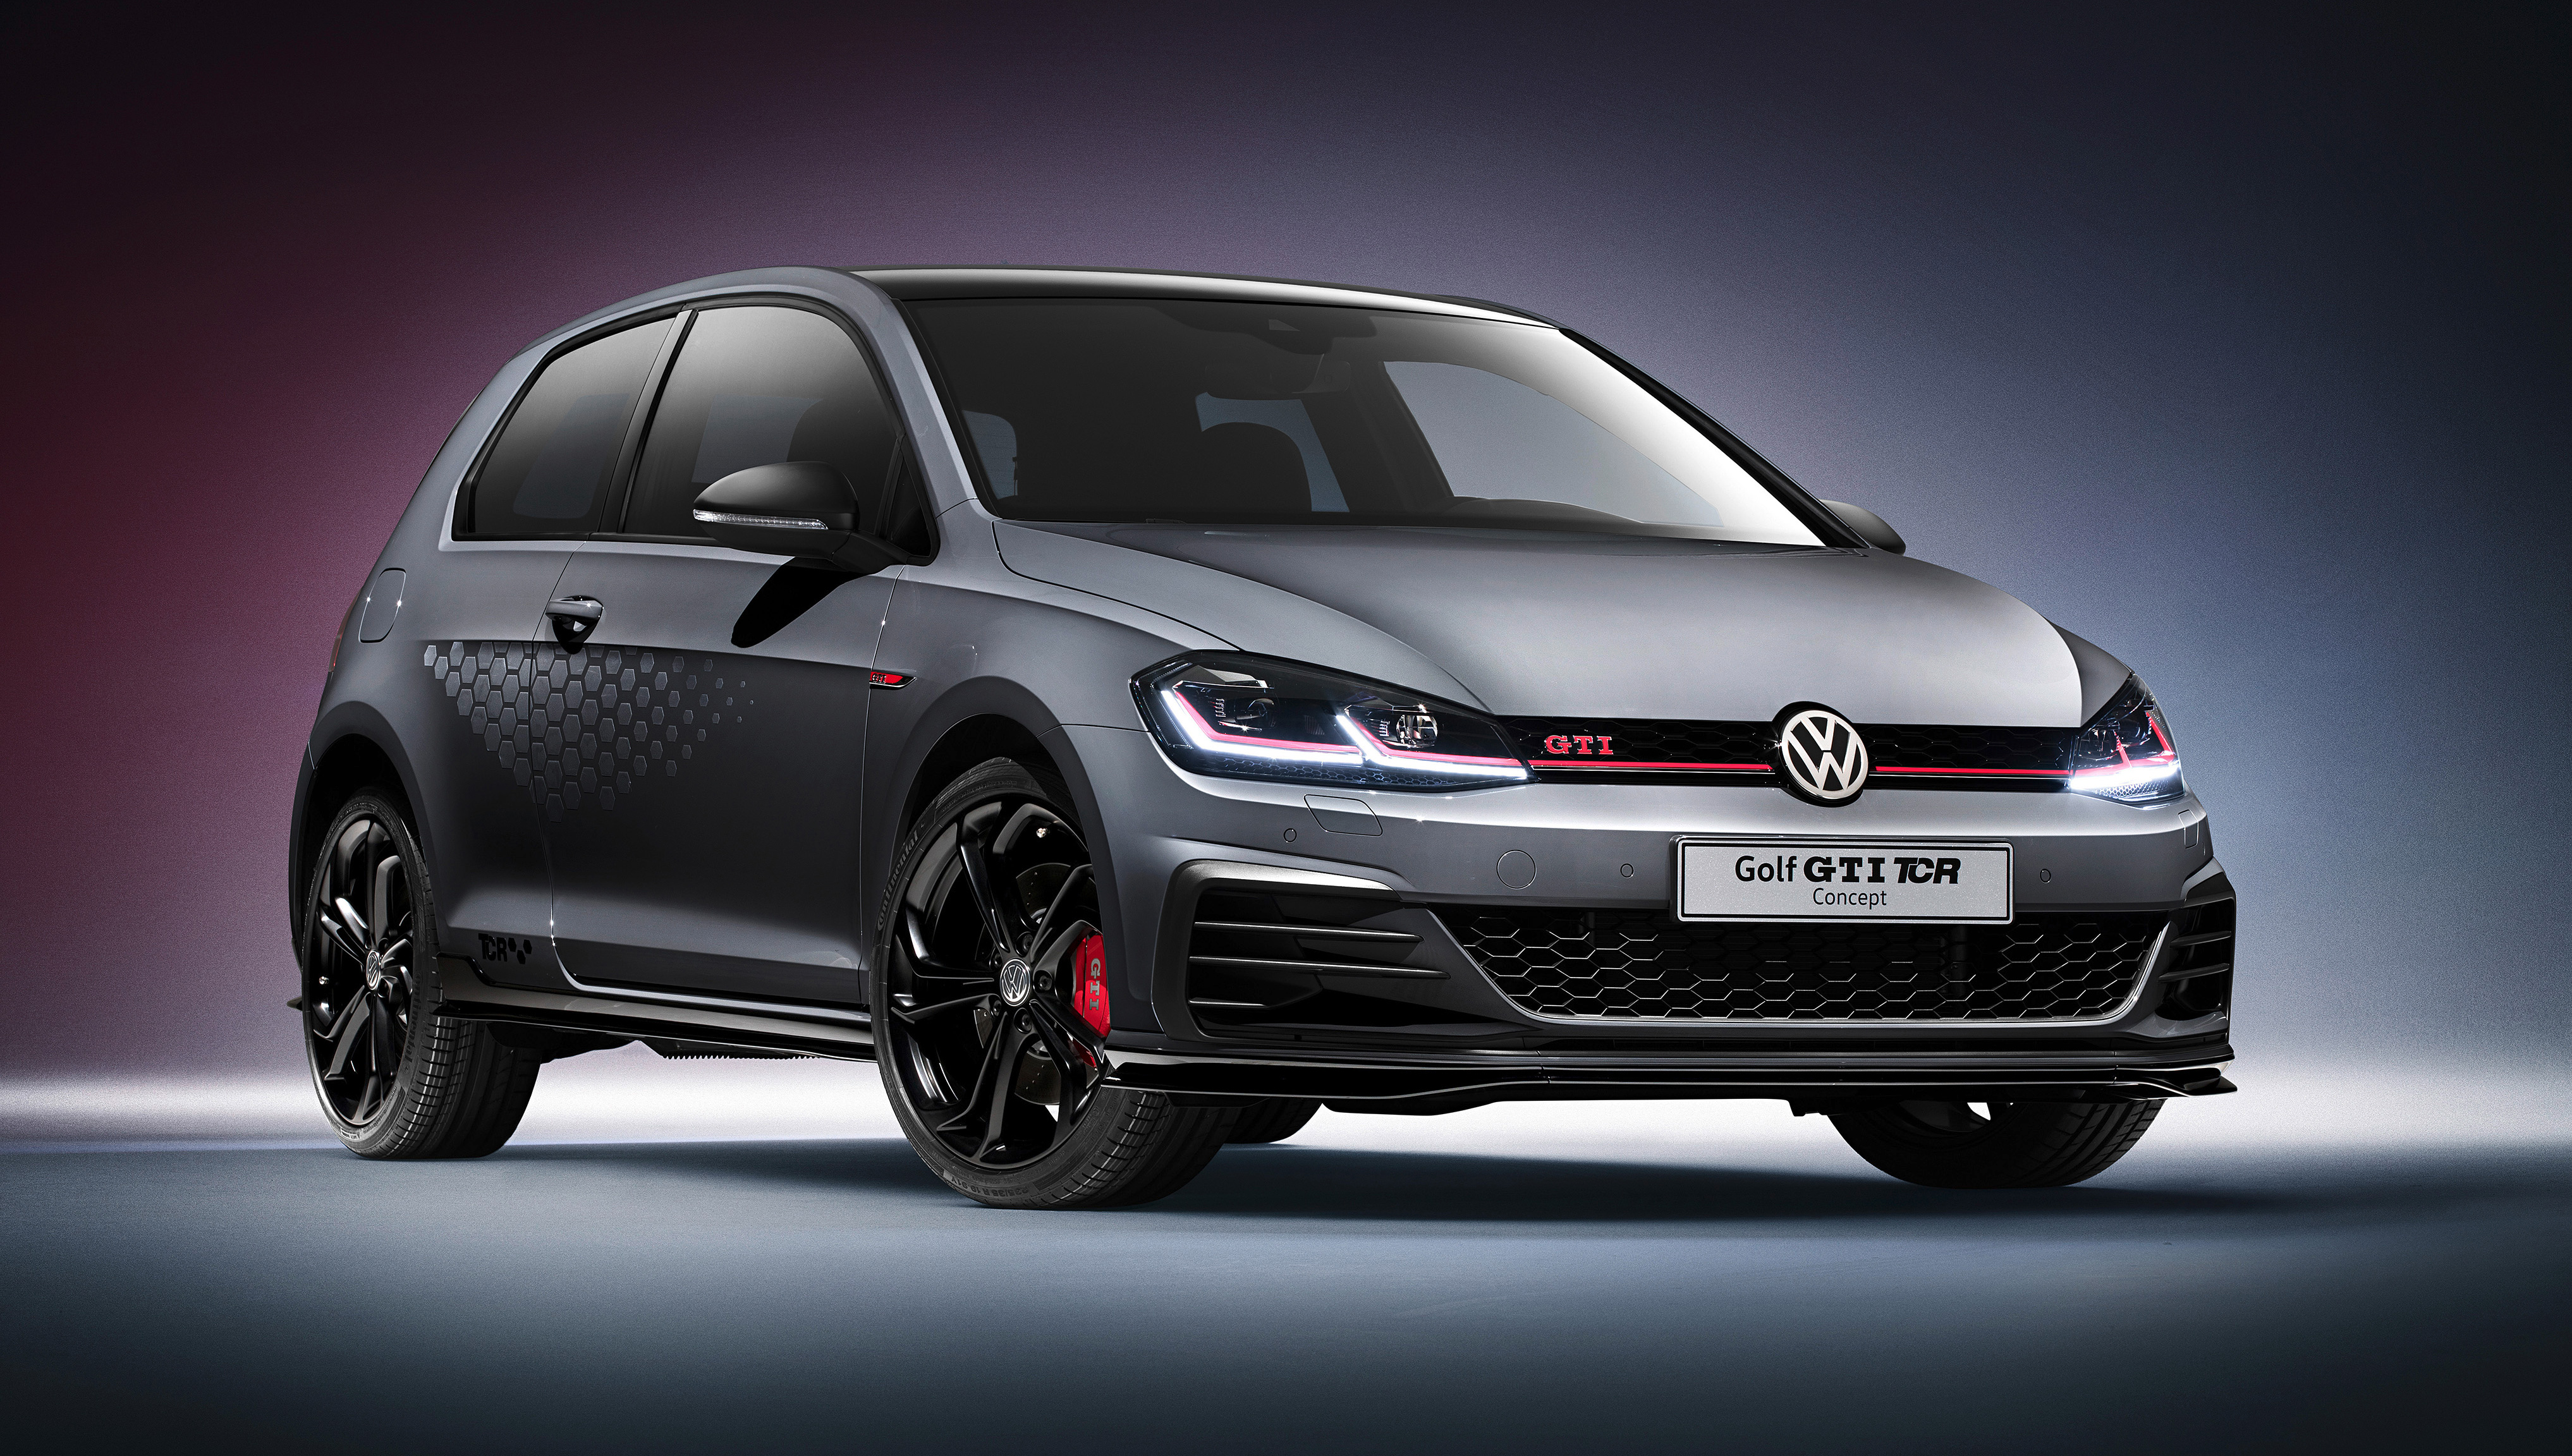 2018 Volkswagen Golf Gti Tcr Concept 4k 2 Wallpaper Hd Car Wallpapers Id 10346